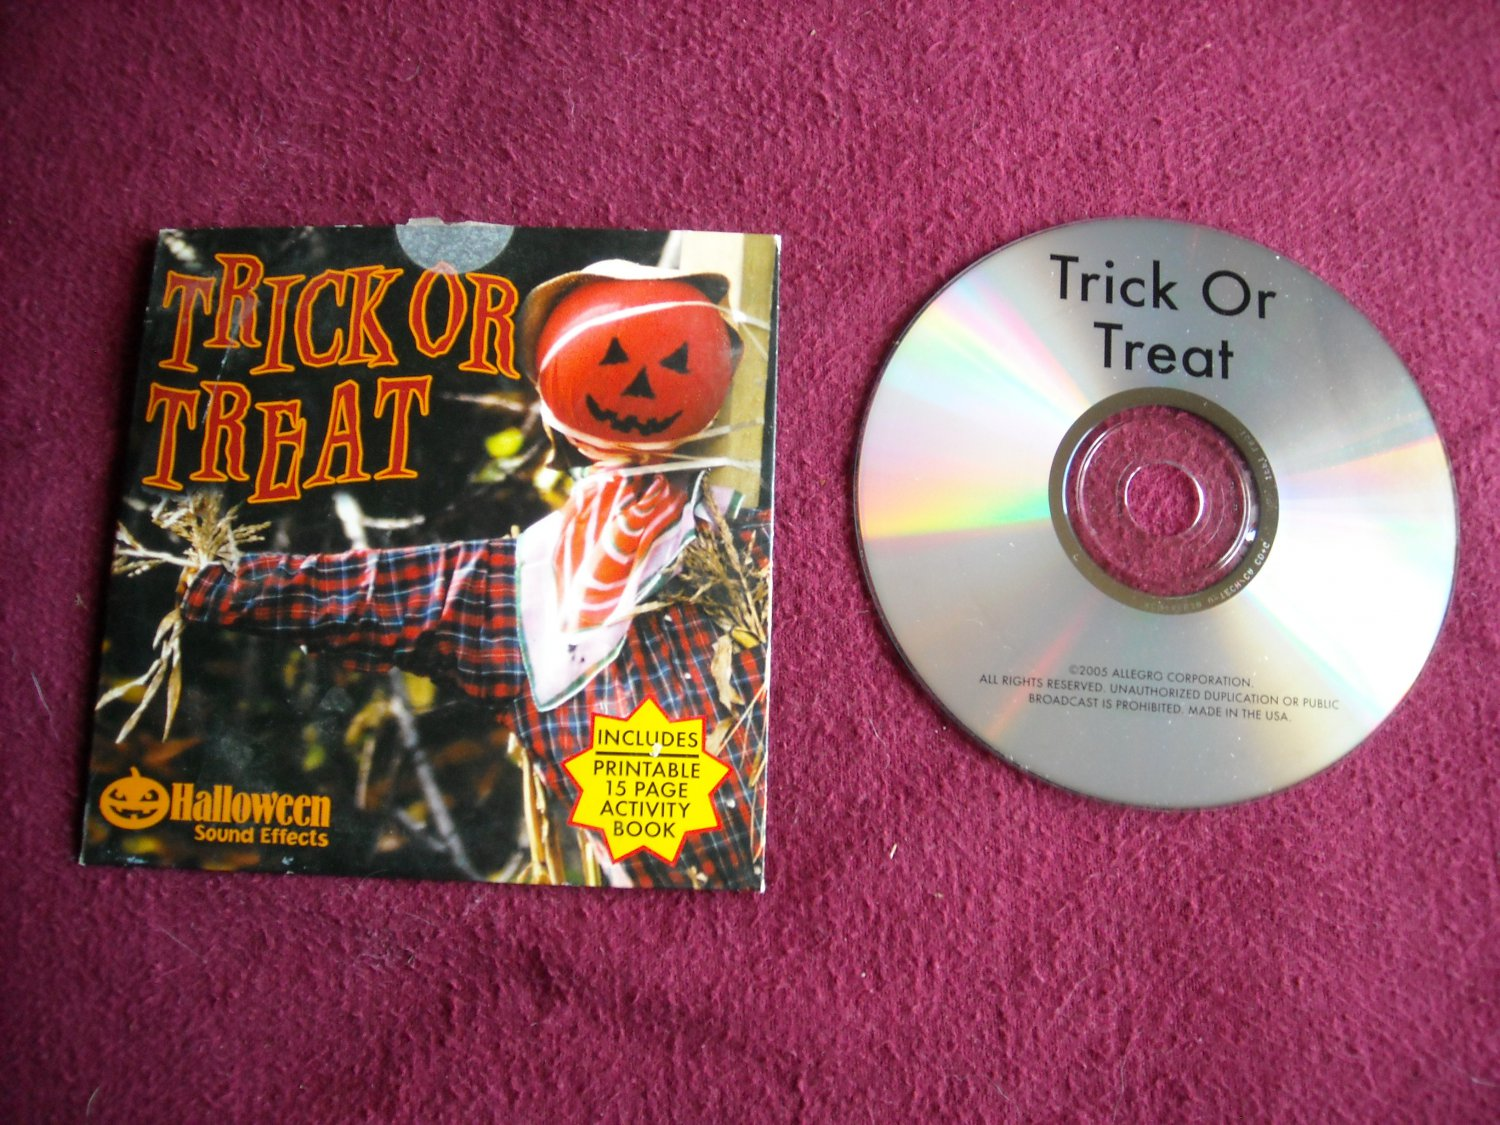 Trick or Treat Halloween Sound Effects with Printable 15 page Activity Book